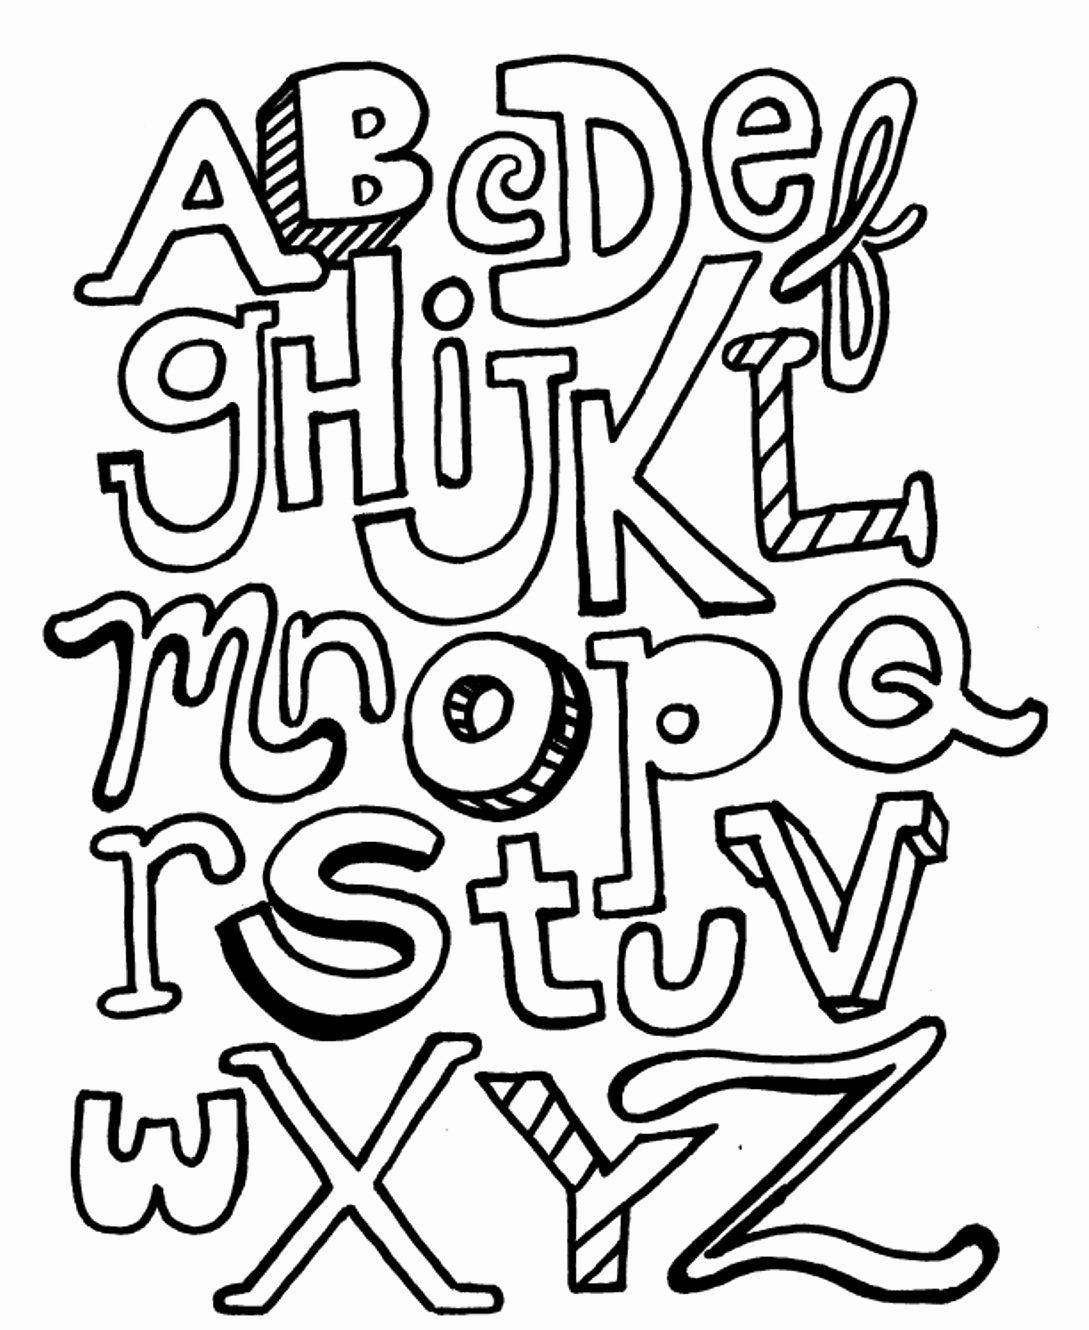 Printable Alphabet Coloring Sheets New Abc Letter Coloring Pages Free Printable Alphabet Coloring In 2020 Abc Coloring Pages Abc Coloring Printable Coloring Book